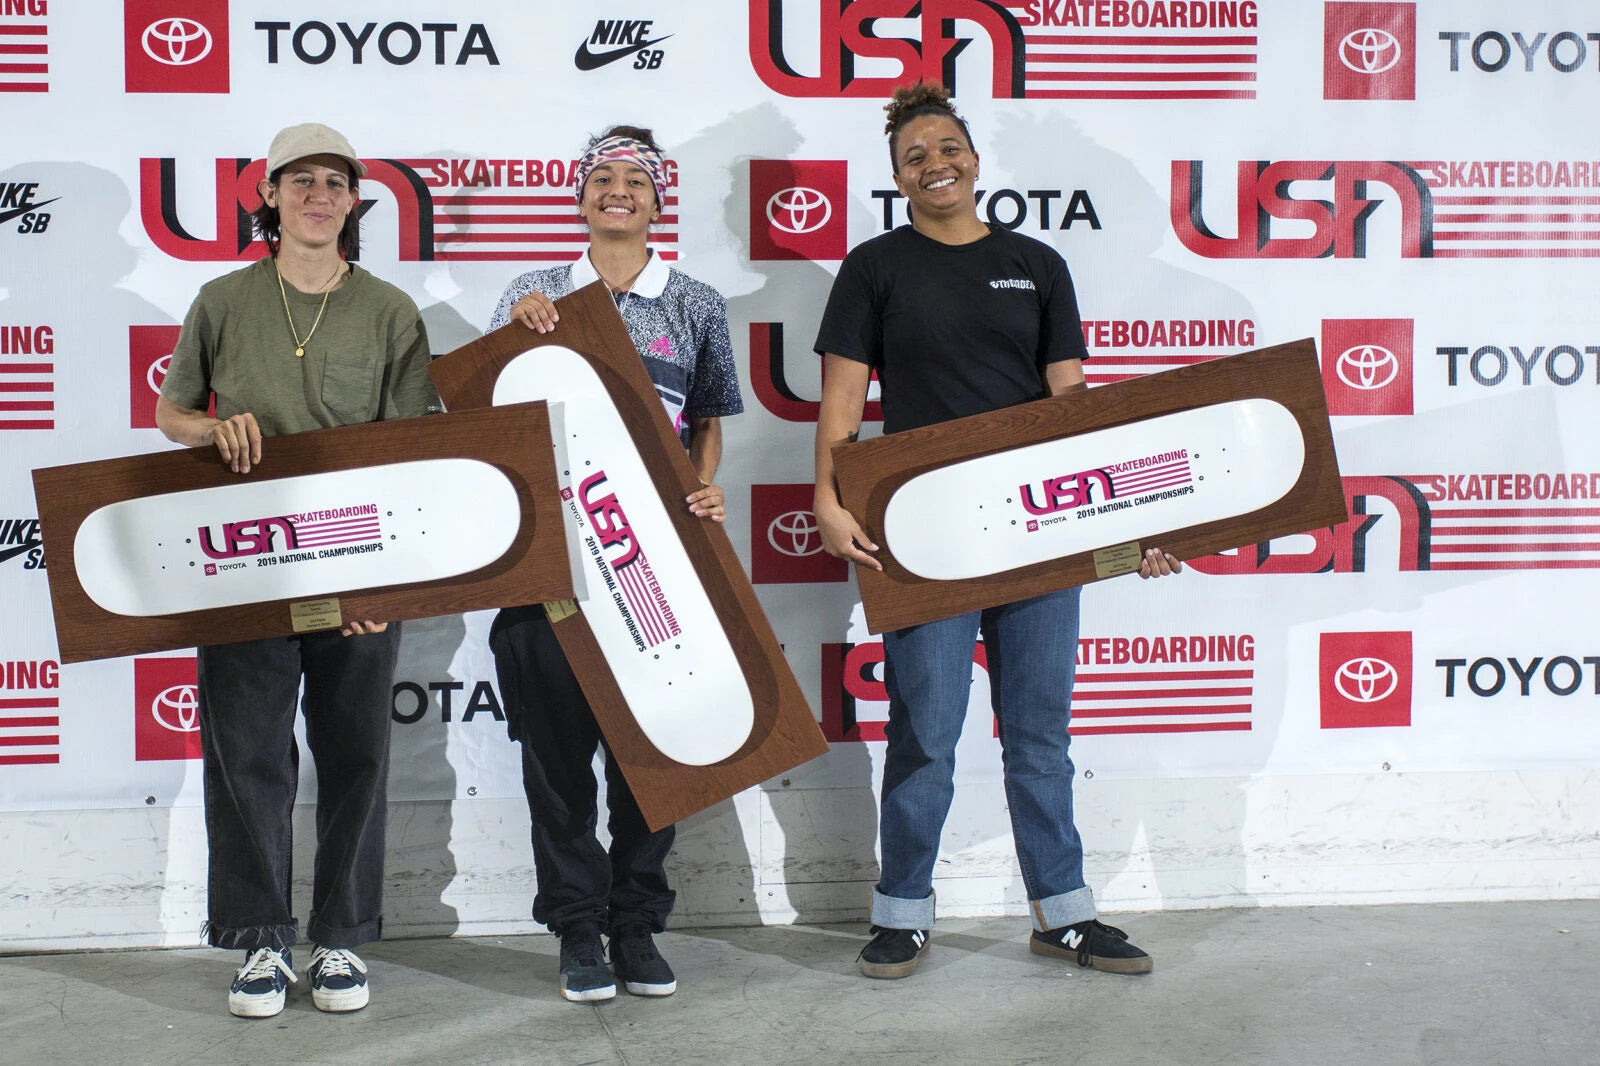 The USA Skateboarding National Championships presented by Toyota Will Combine Virtual Video and In-Person Event Format